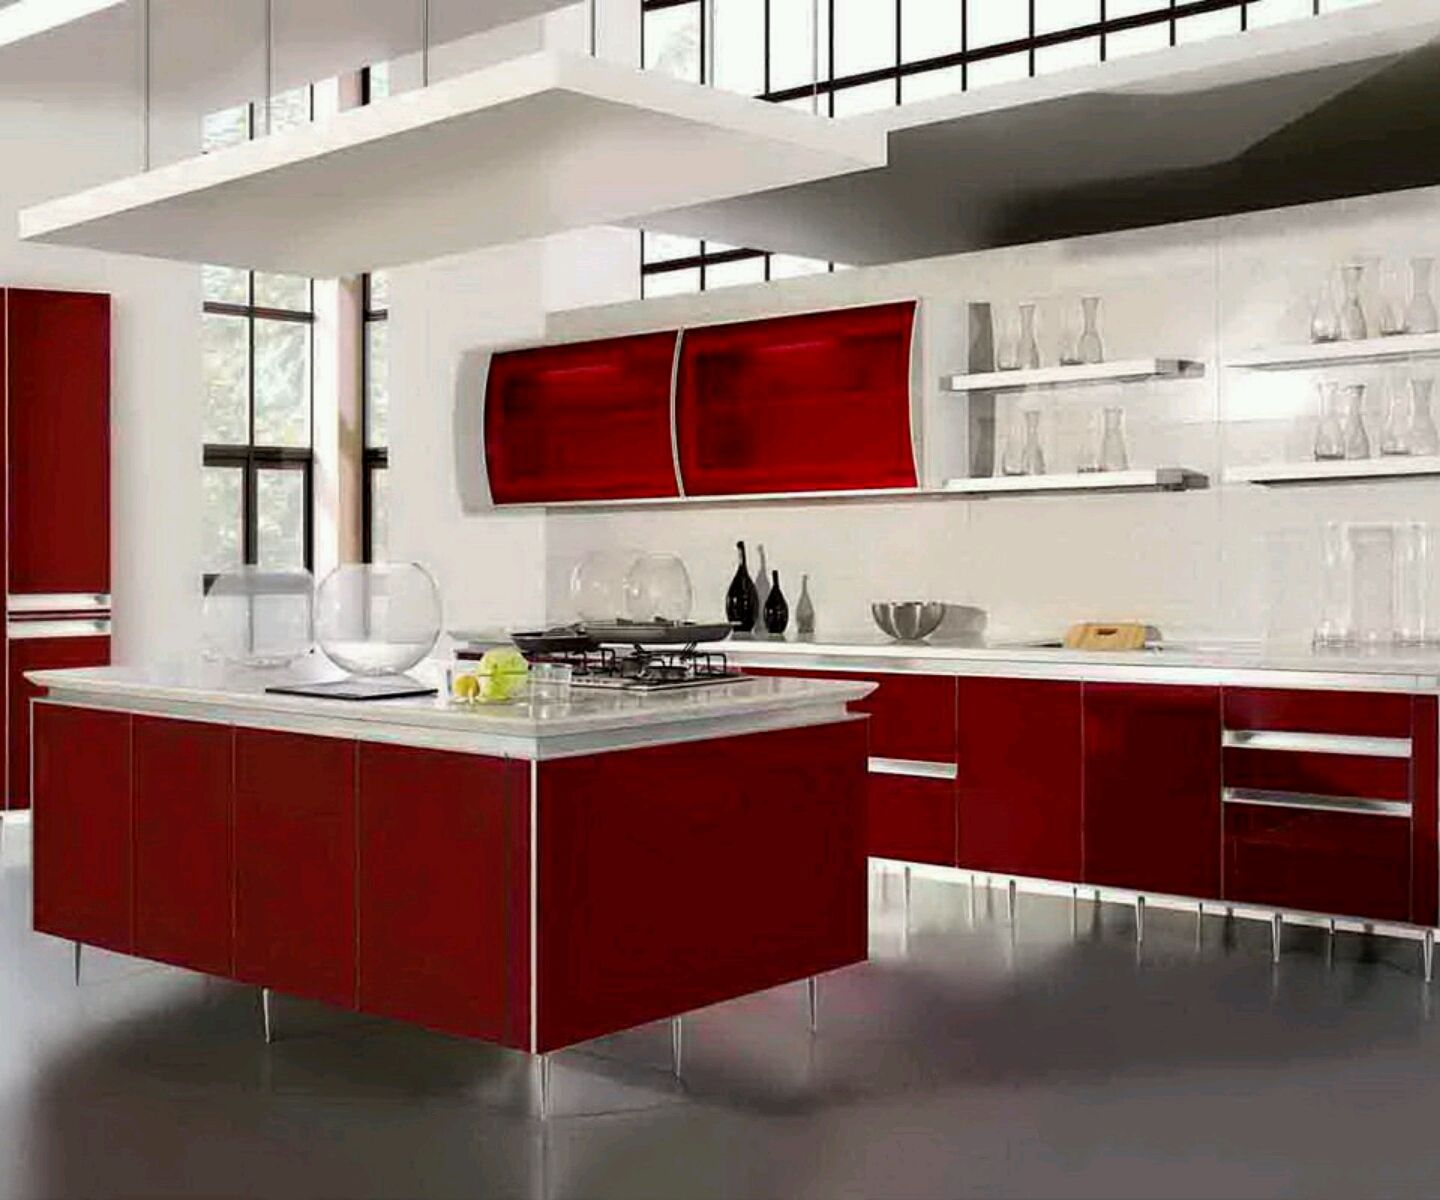 New Home Designs Latest Ultra Modern Kitchen Designs Ideas: Home Designs Latest Ultra Modern Kitchen Designs Ideas